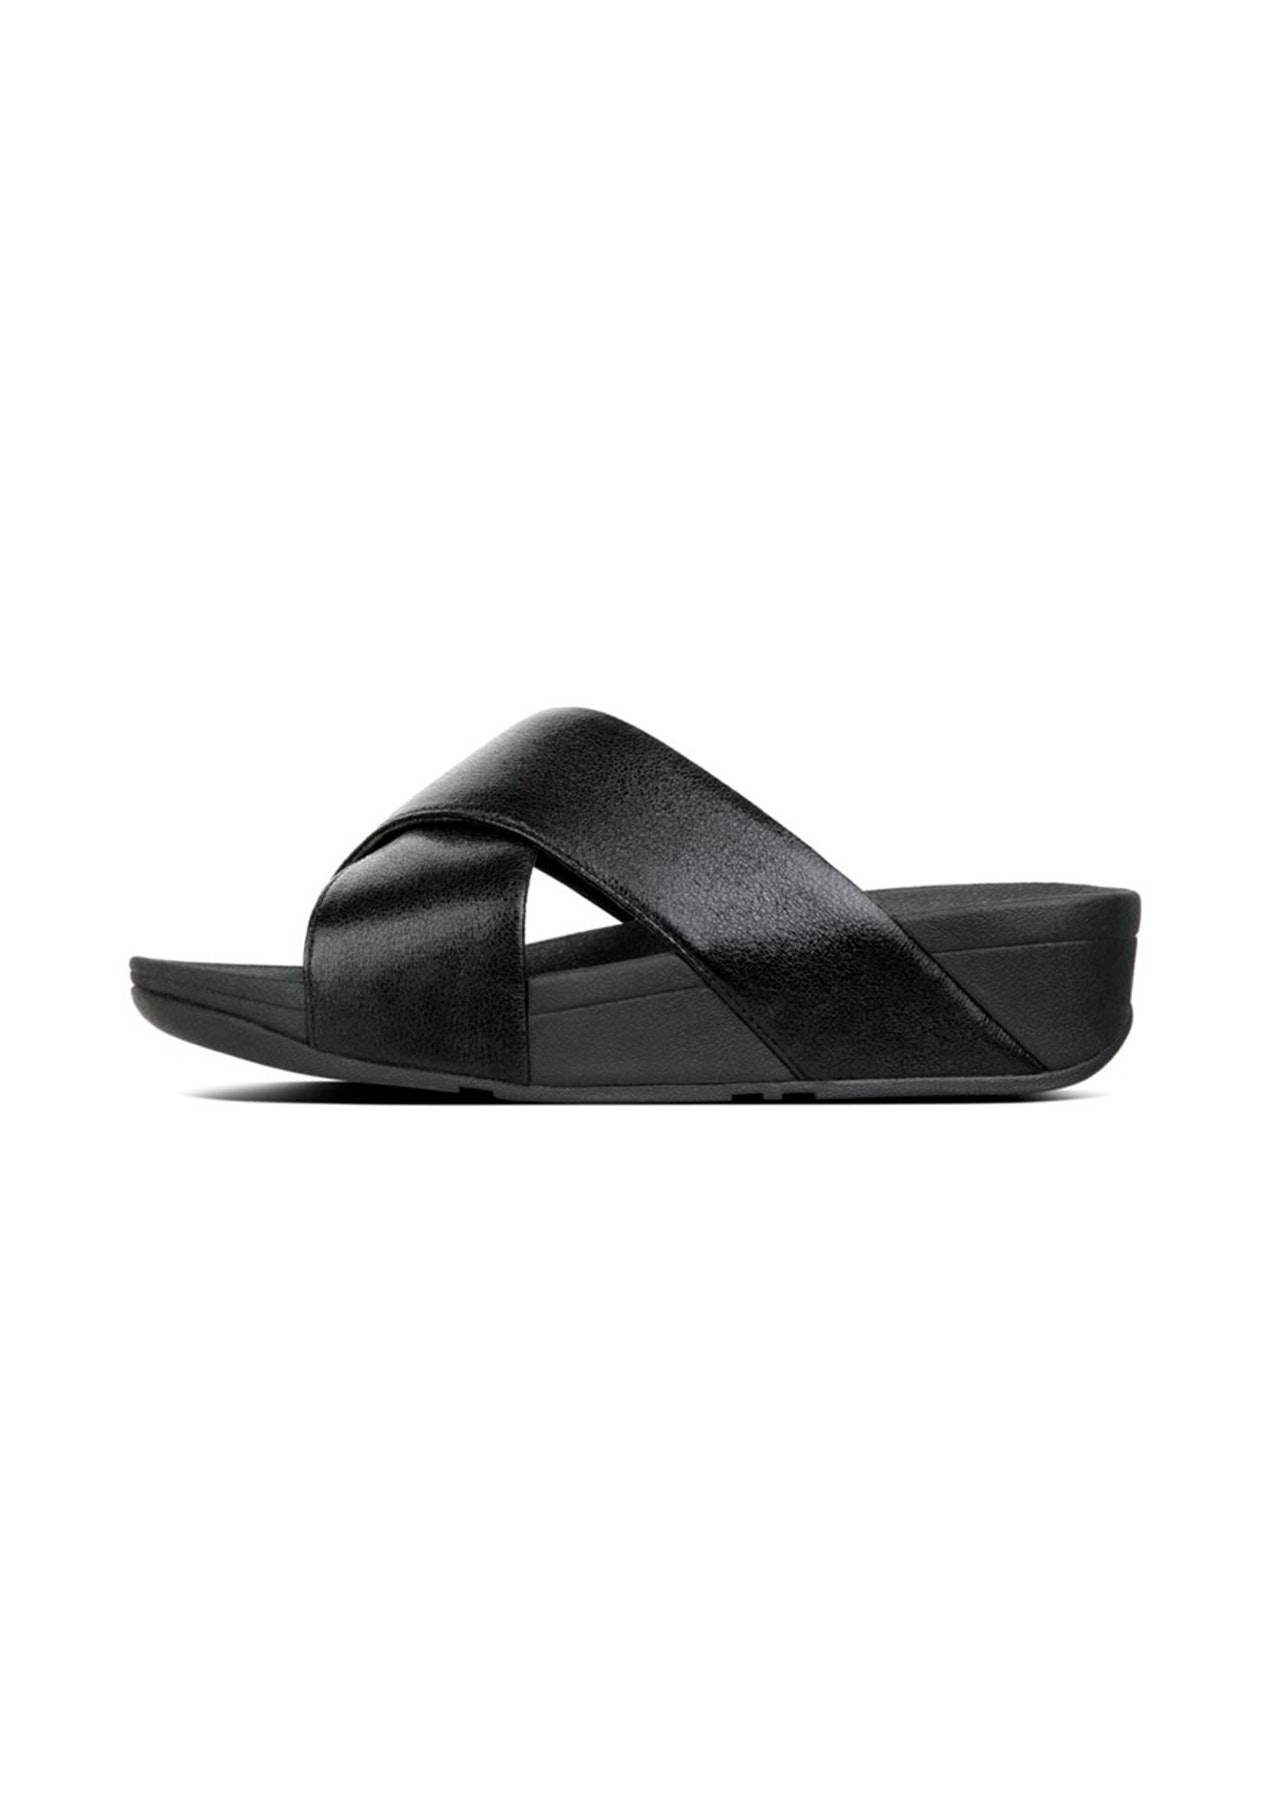 7be1a70aa97bf Fit Flop - Lulu Molten Metal Slides -Black - Fit Flop   More - Onceit